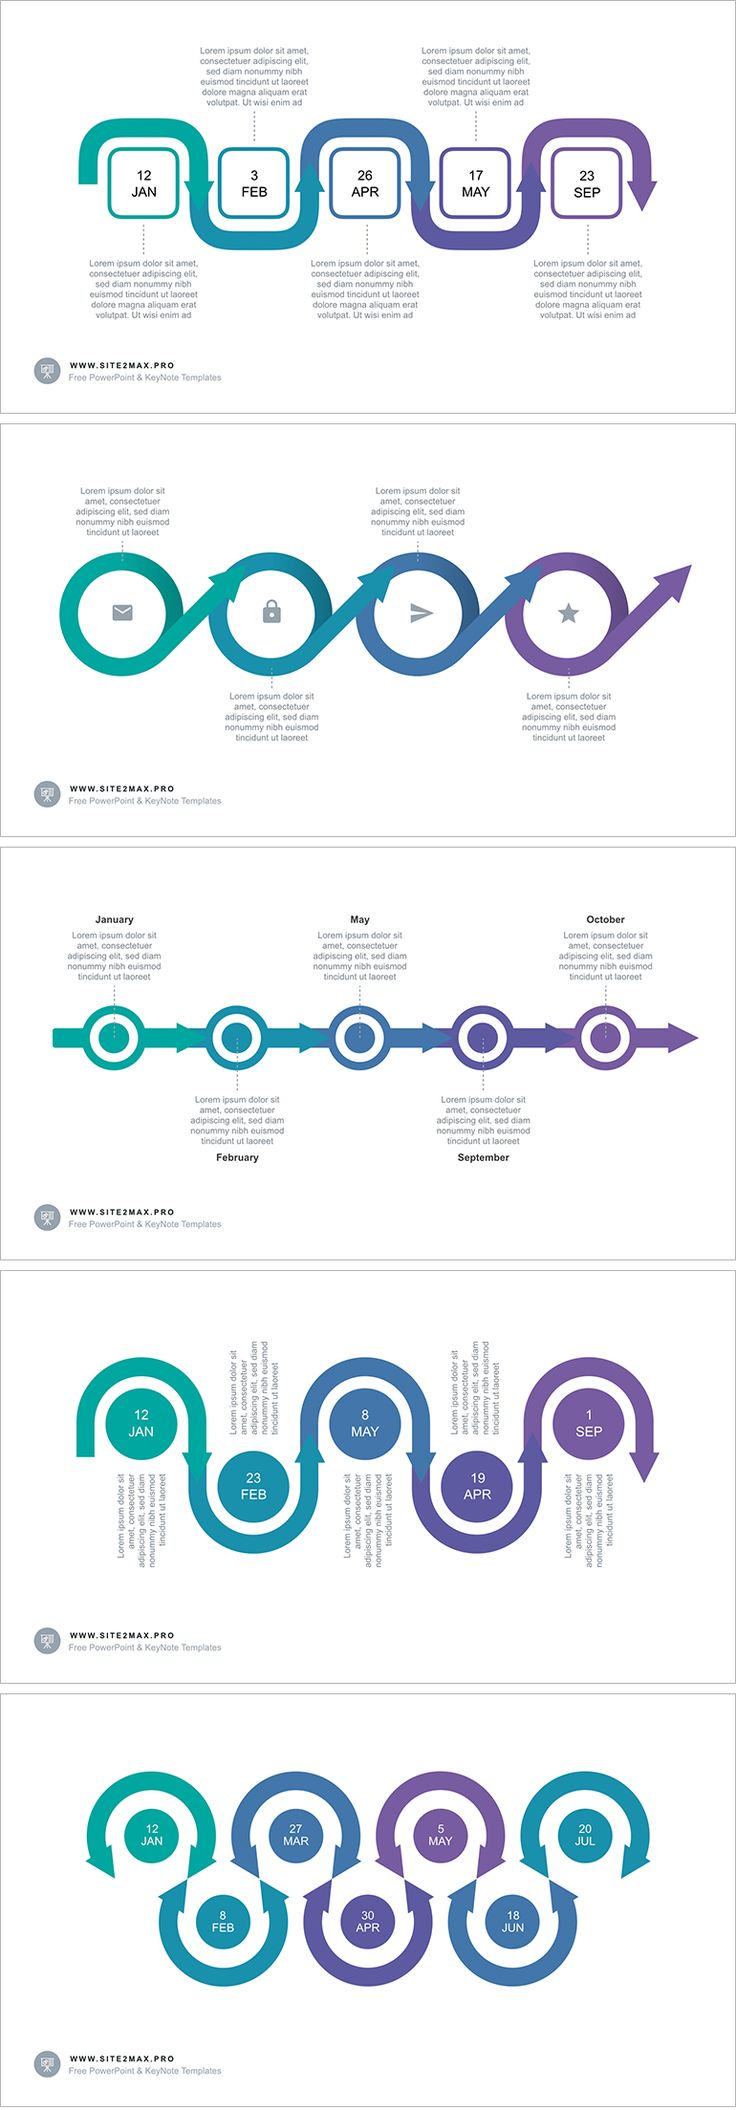 Download: http://site2max.pro/timeline-arrow-free-powerpoint-template/ Timeline Arrow free PowerPoint template #timeline #powerpoint #ppt #pptx #step #violet #infographic #marketing